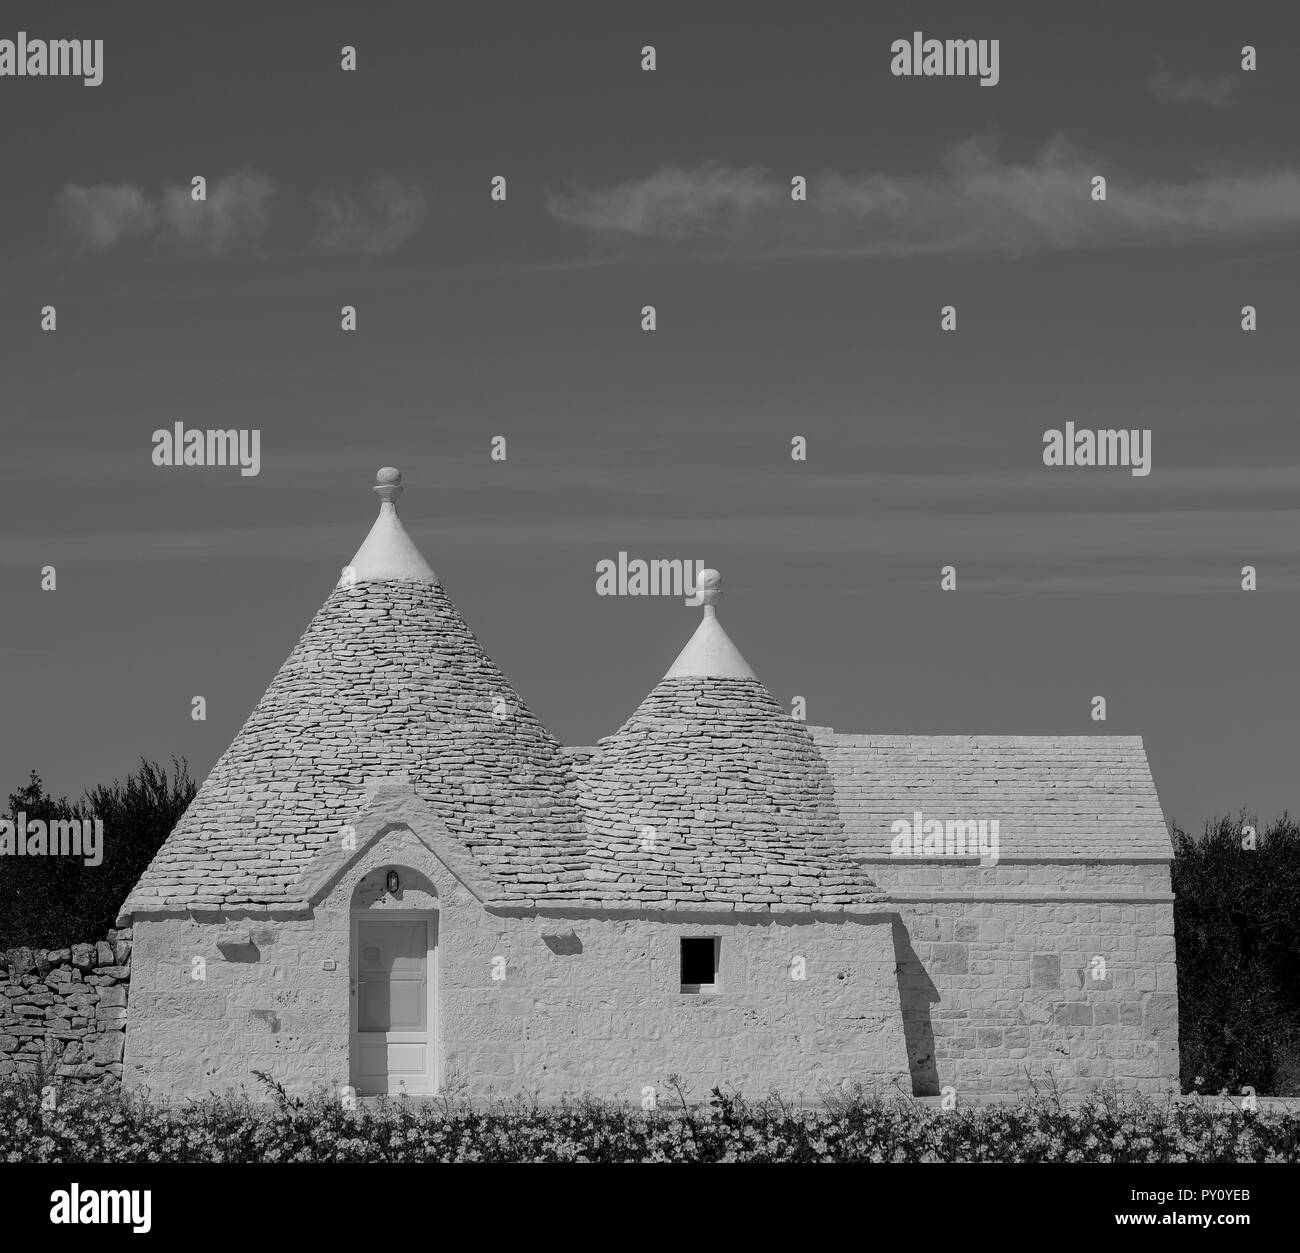 Traditional white-washed trulli house with conical roof, located outside Locorotondo in the Itria Valley, Puglia, Southern Italy, in monochrome. - Stock Image